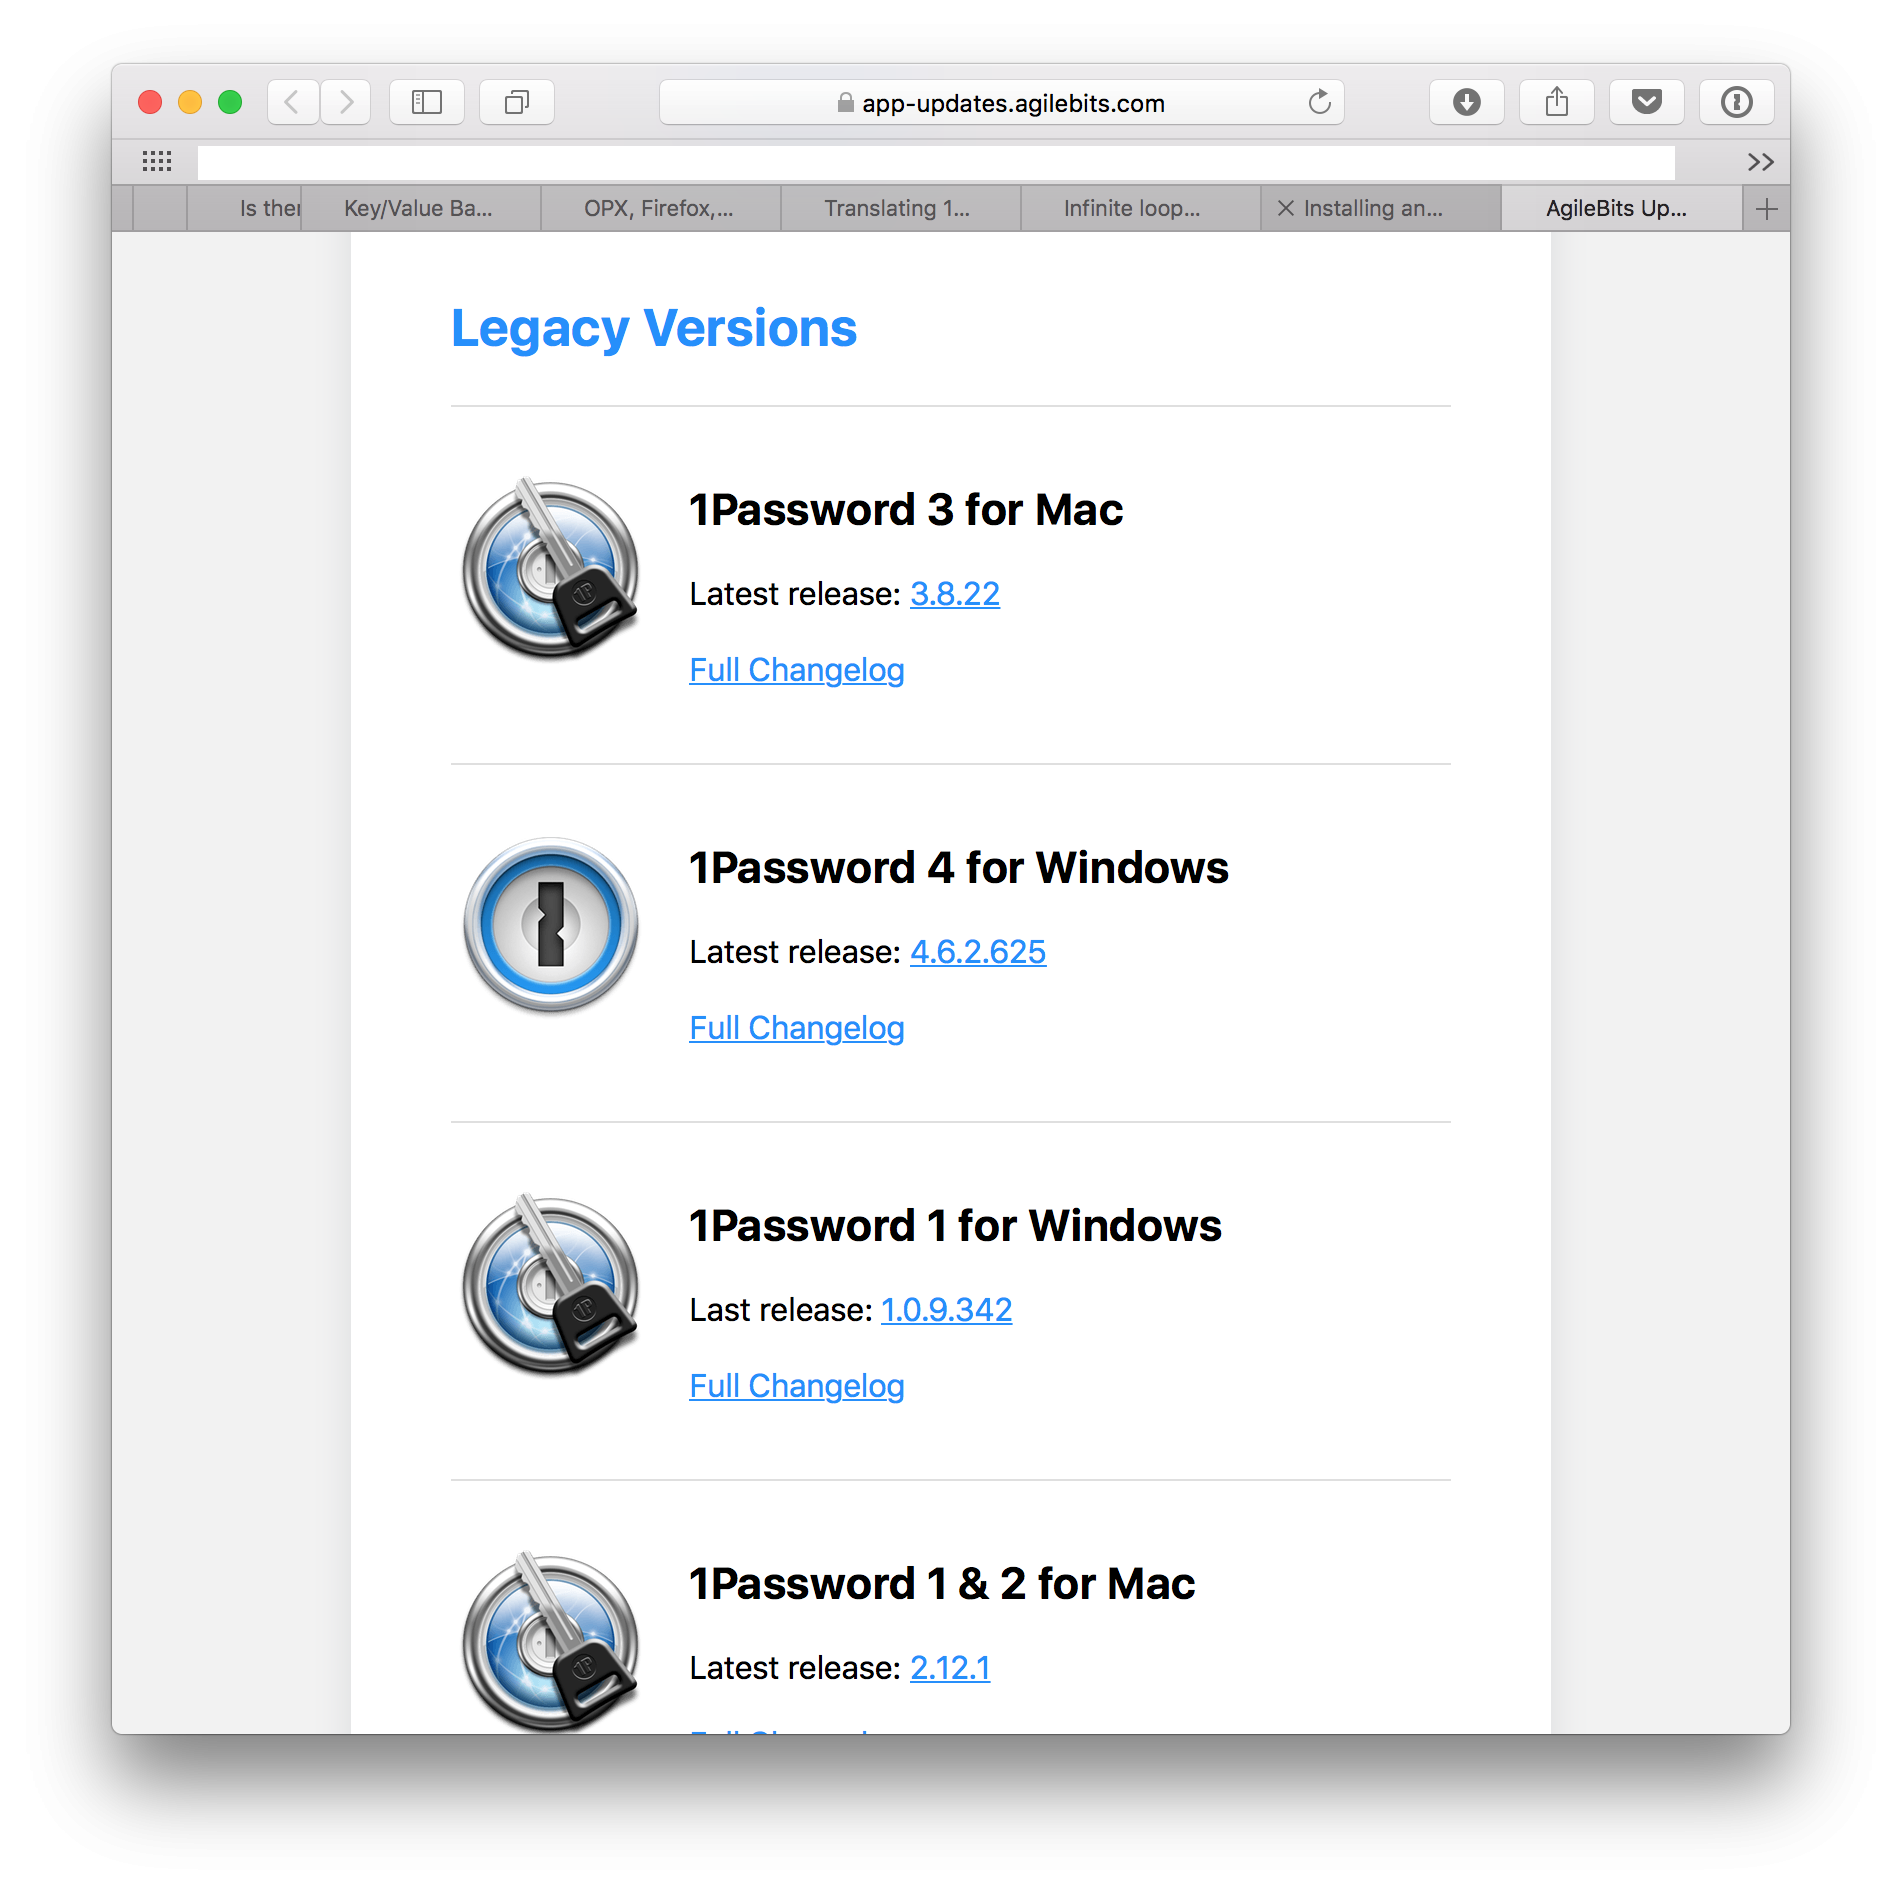 How can I use 1Password with an older version of Firefox